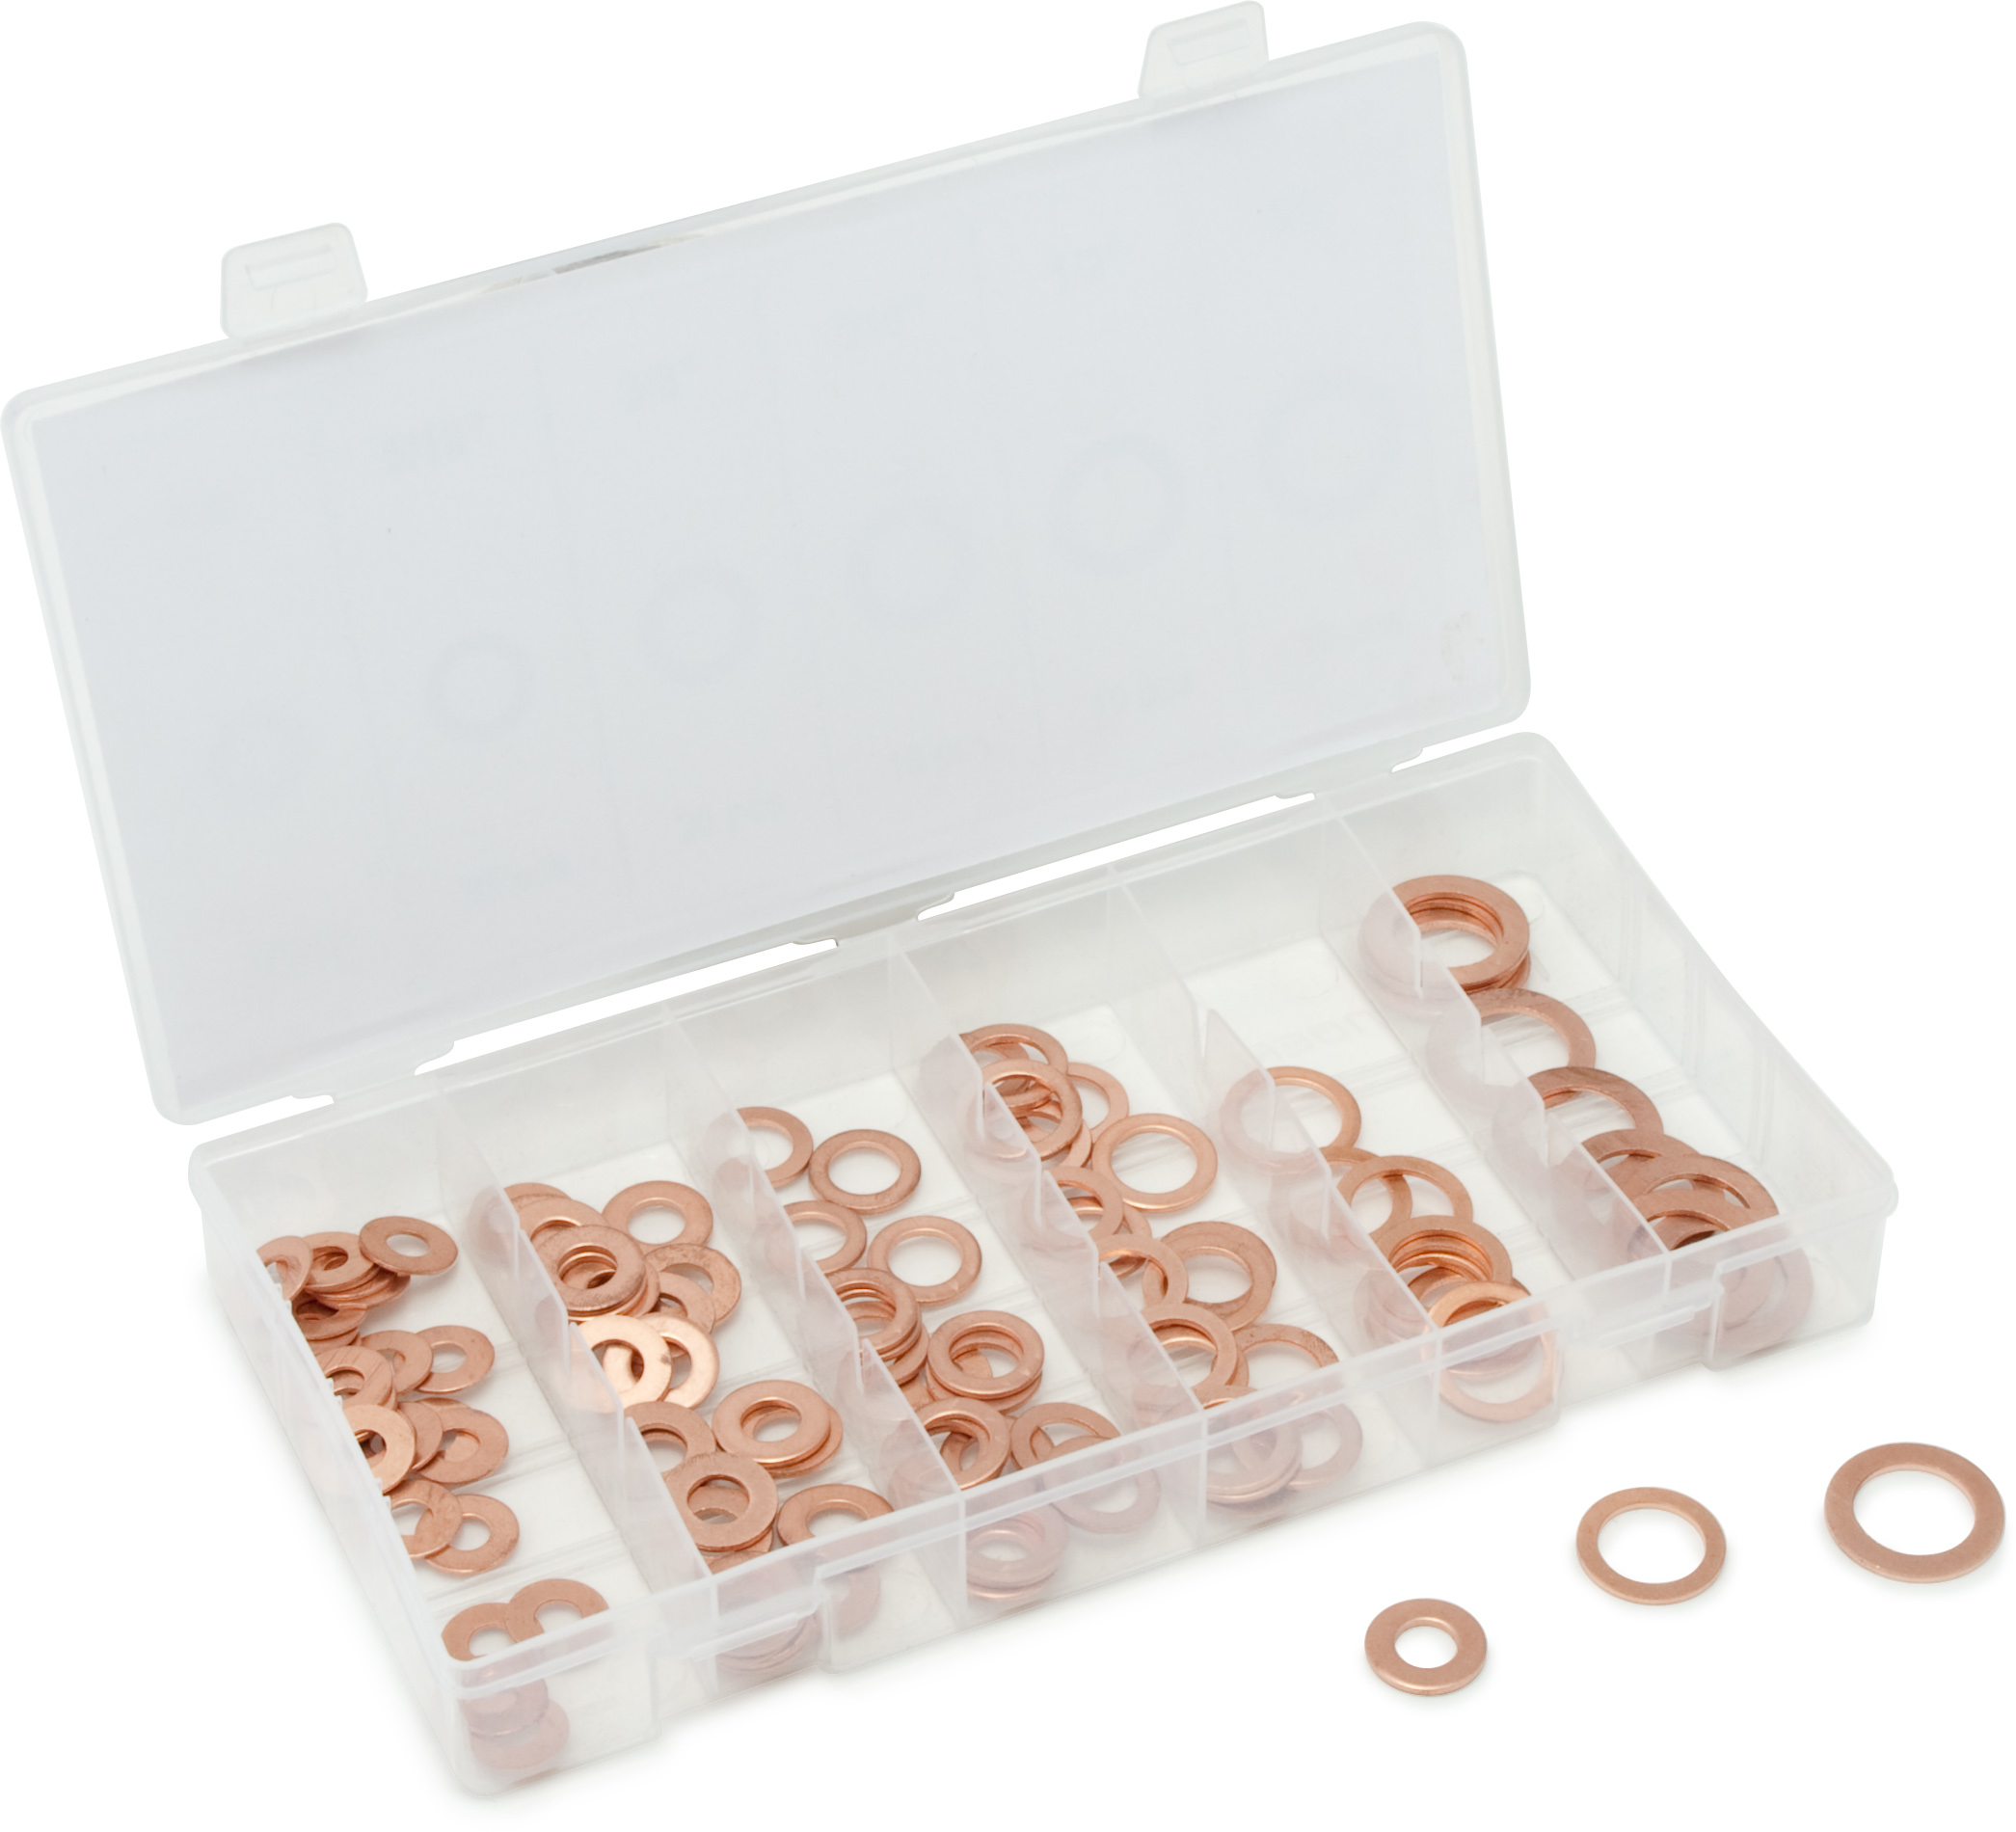 110 Pc. Copper Washer Assortment